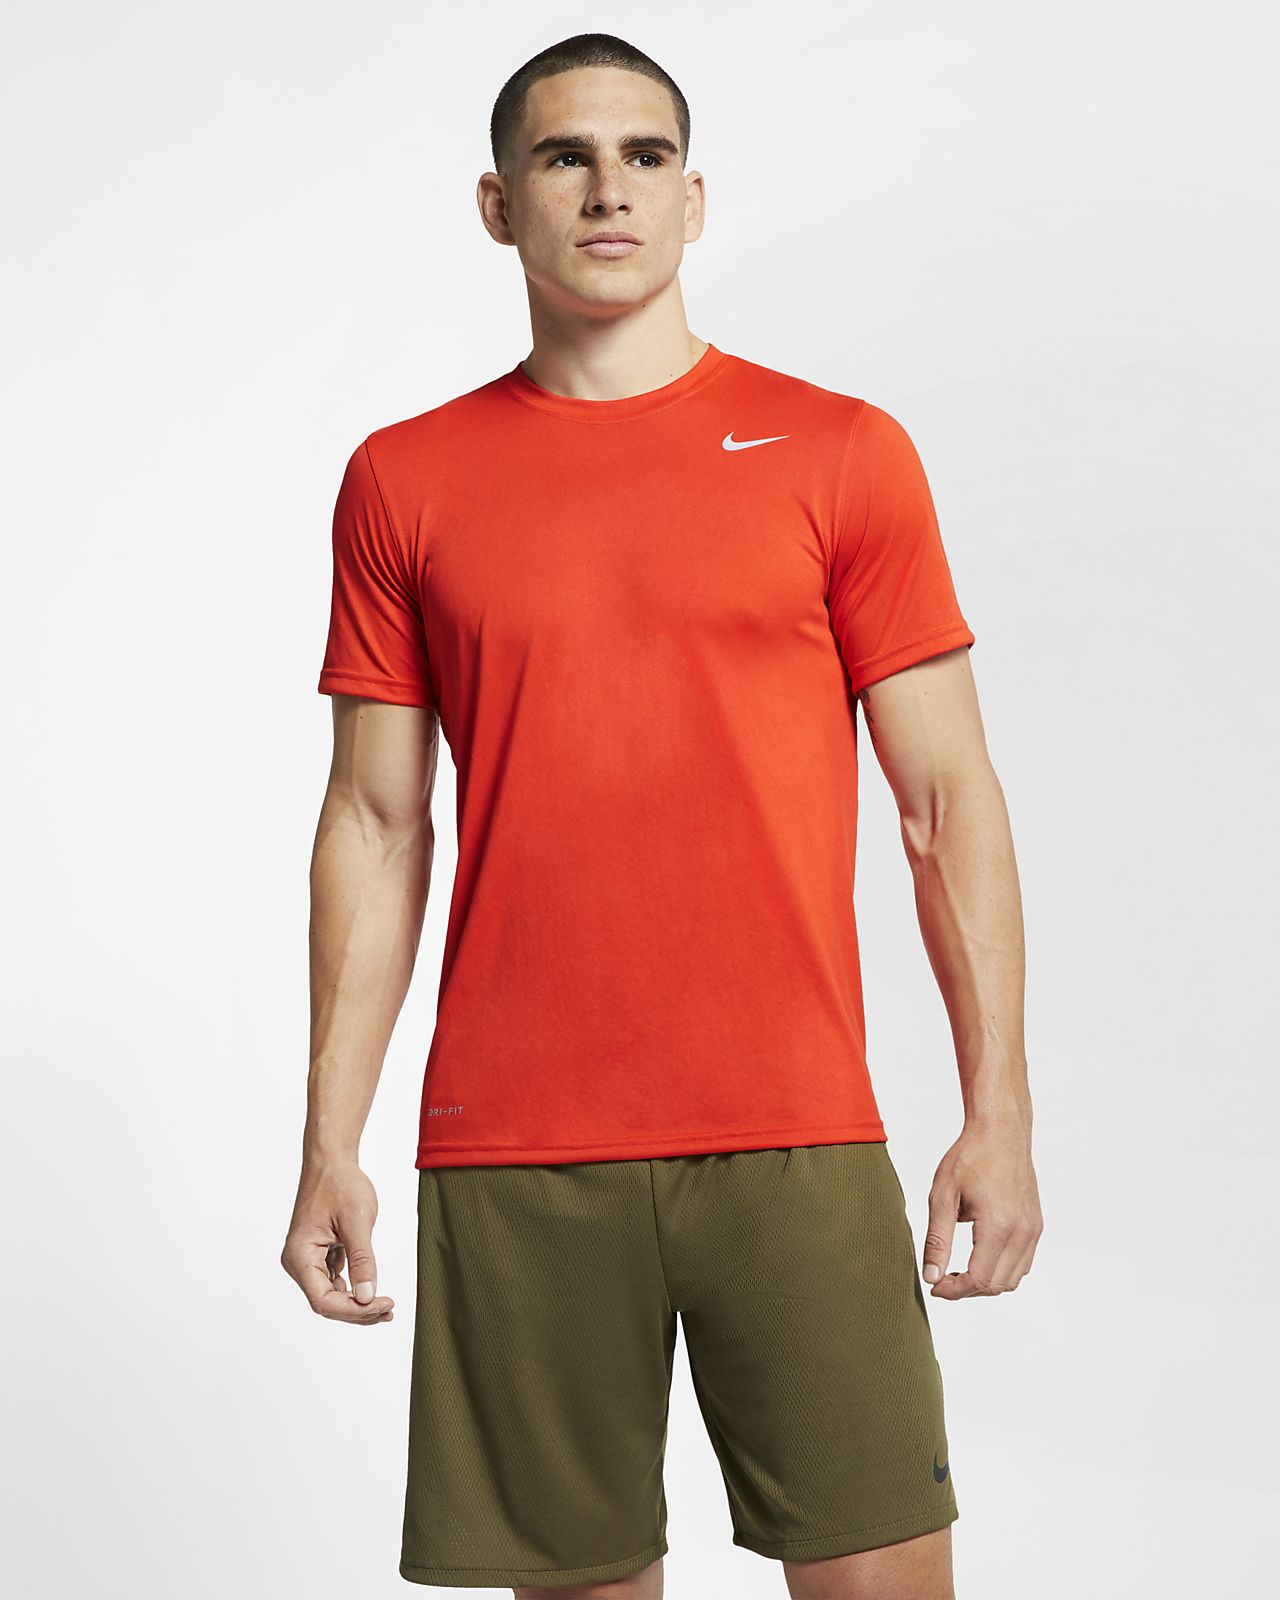 9fc83ce4 Nike Legend 2.0 Men's Training T-Shirt. Nike.com